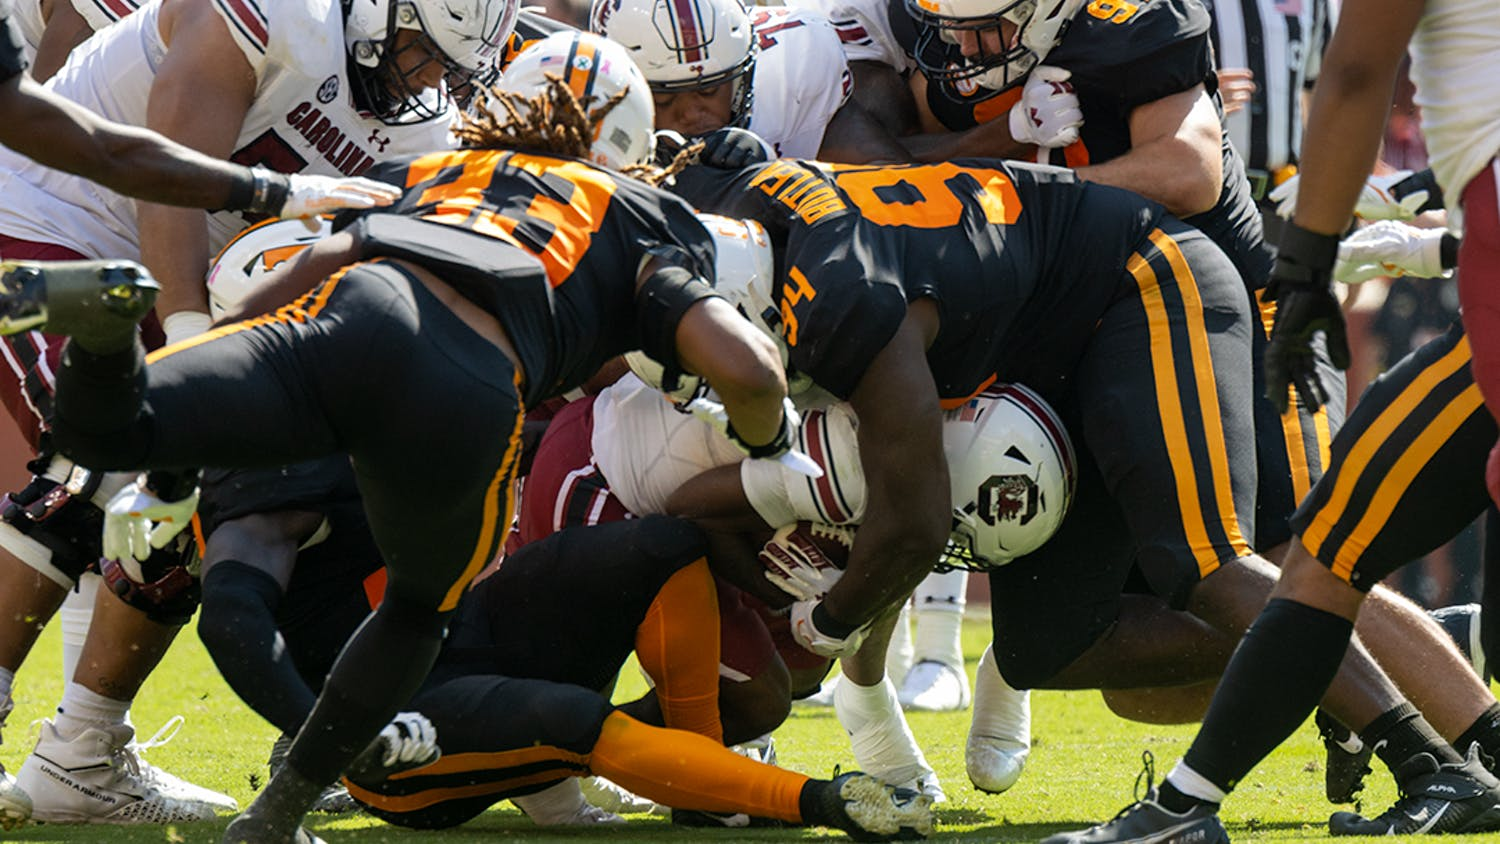 Freshman running back Juju McDowell rushes into a wall of Volunteers after the ball handoff from sophomore quarterback Luke Doty on Oct. 9, 2021. McDowell would carry 8 times for 41 yards.